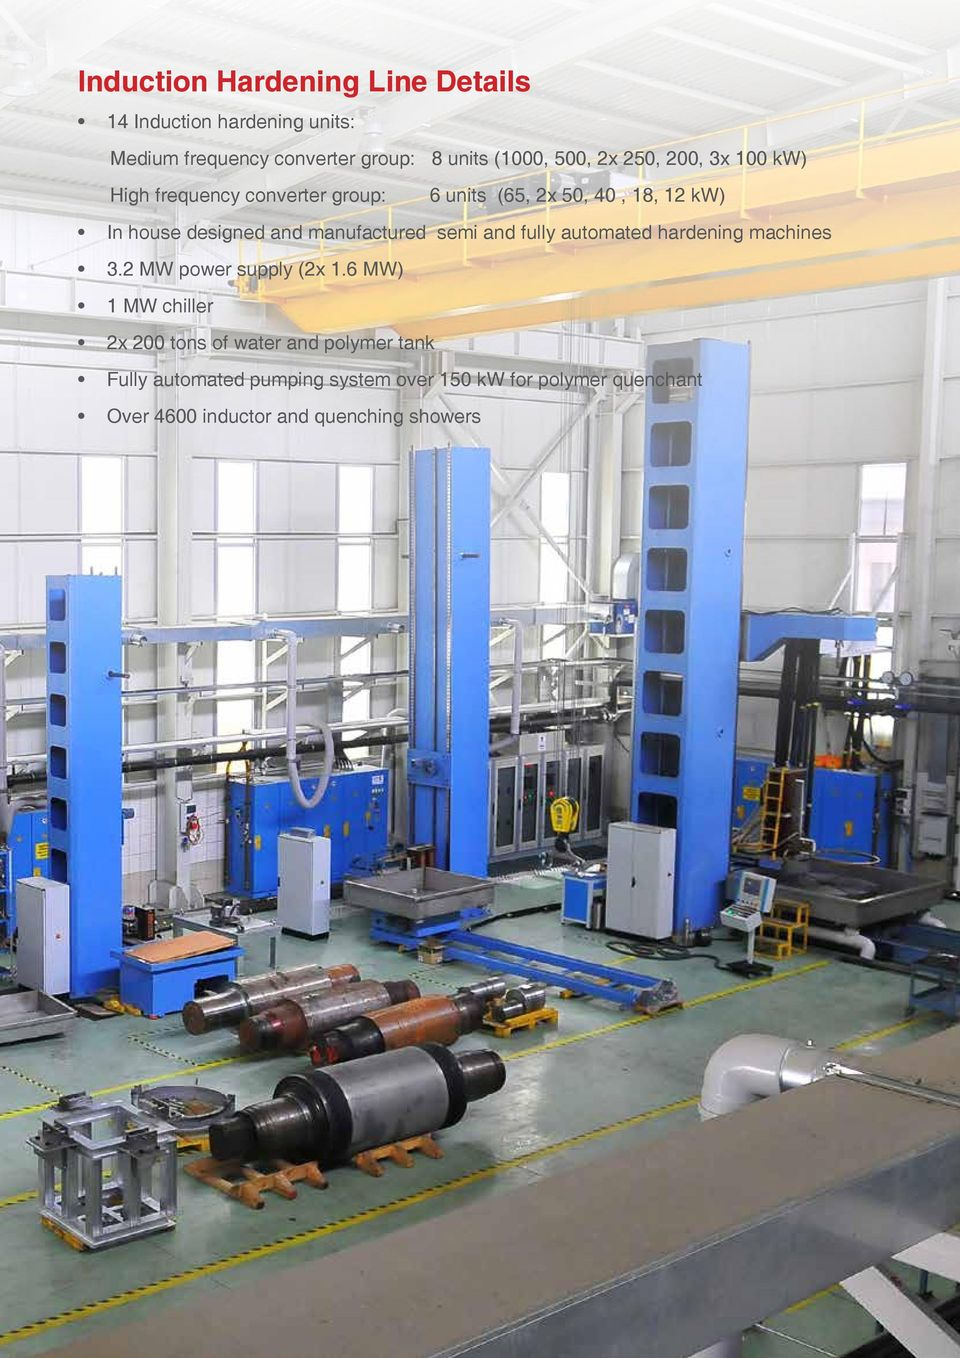 manufactured semi and fully automated hardening machines 3.2 MW power supply (2x 1.